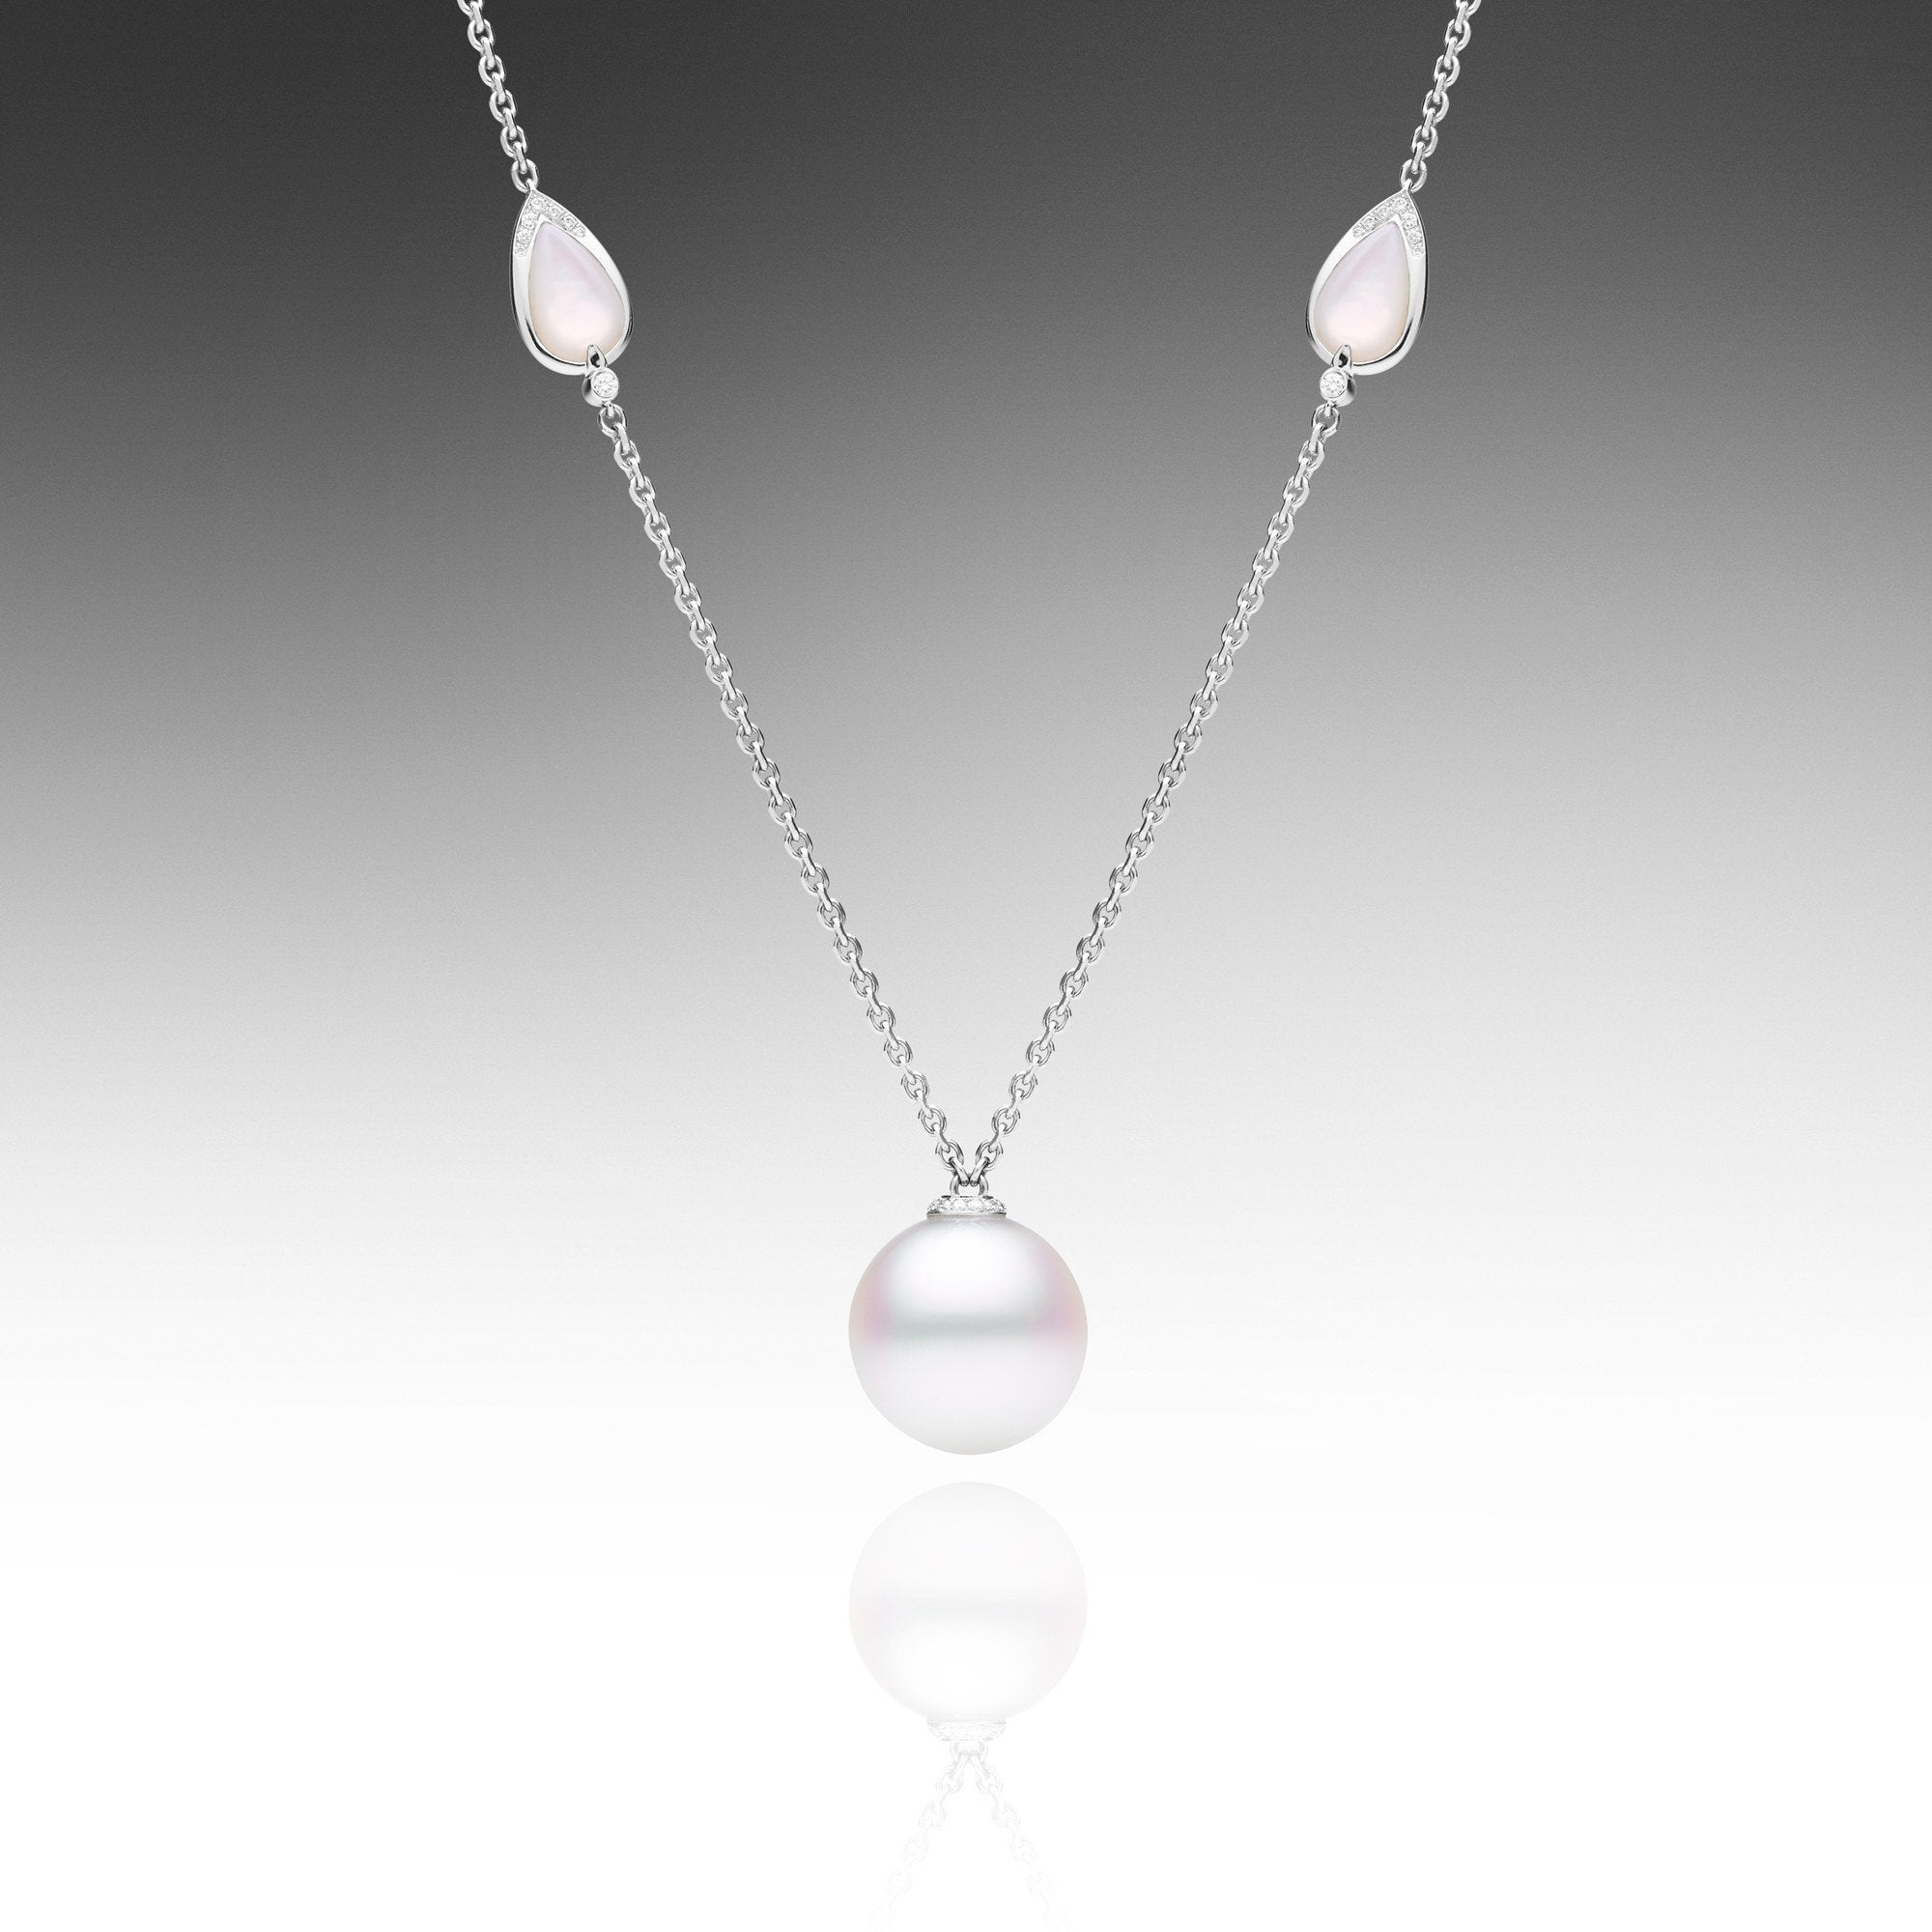 pearl single jewellery anma product necklace medium chain